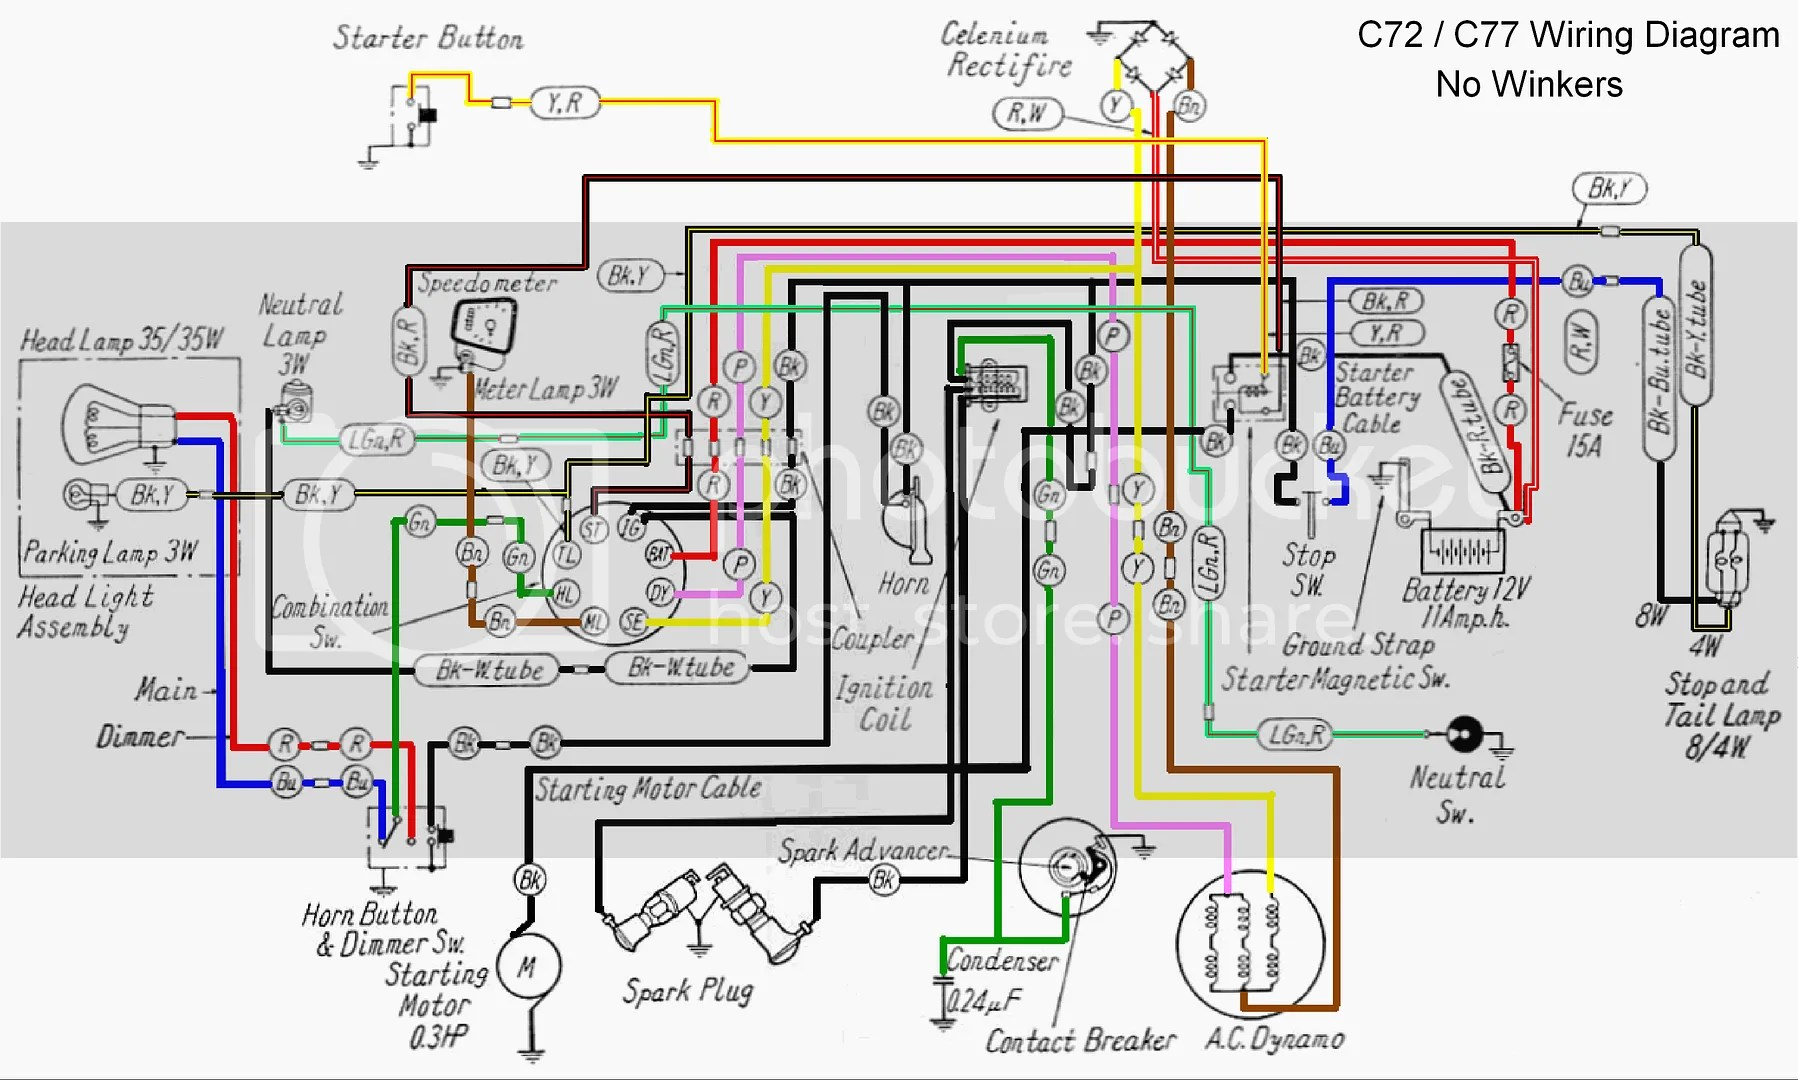 medium resolution of i was goofing off at work one day during my lunch hour and i took a ca77 wiring diagram and colorized it helps me see follow the wires much better than